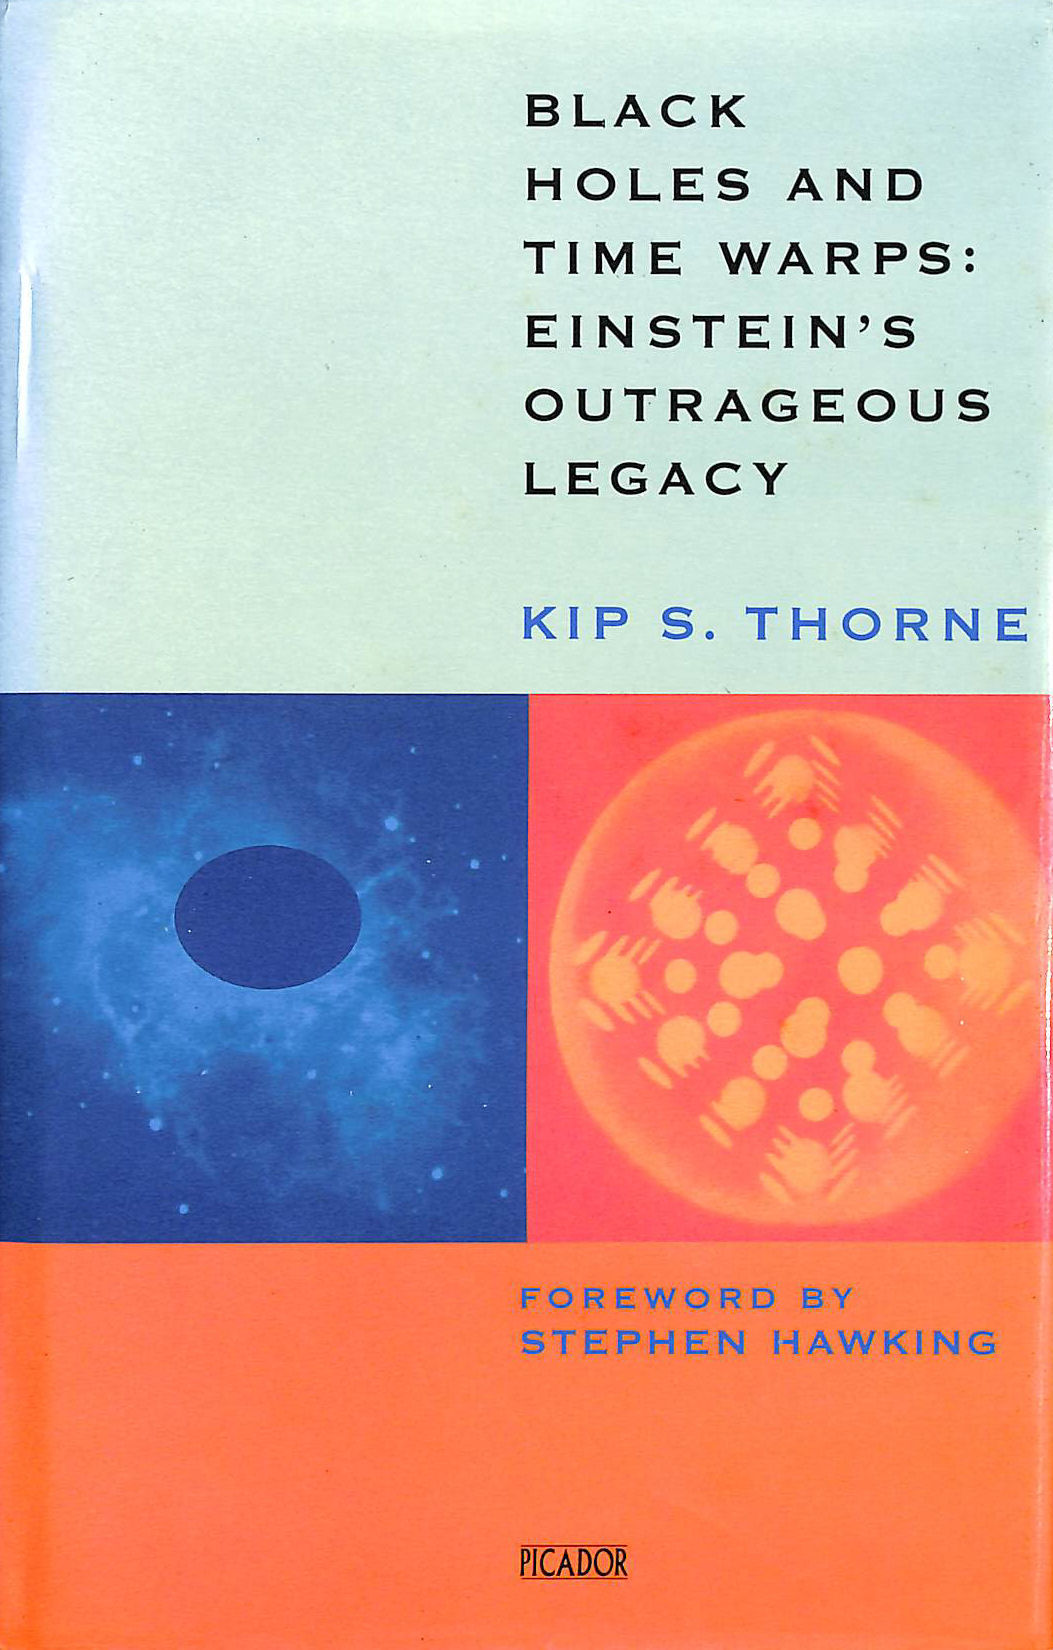 Image for Black Holes And Time Warps: Einstein's Outrageous Legacy